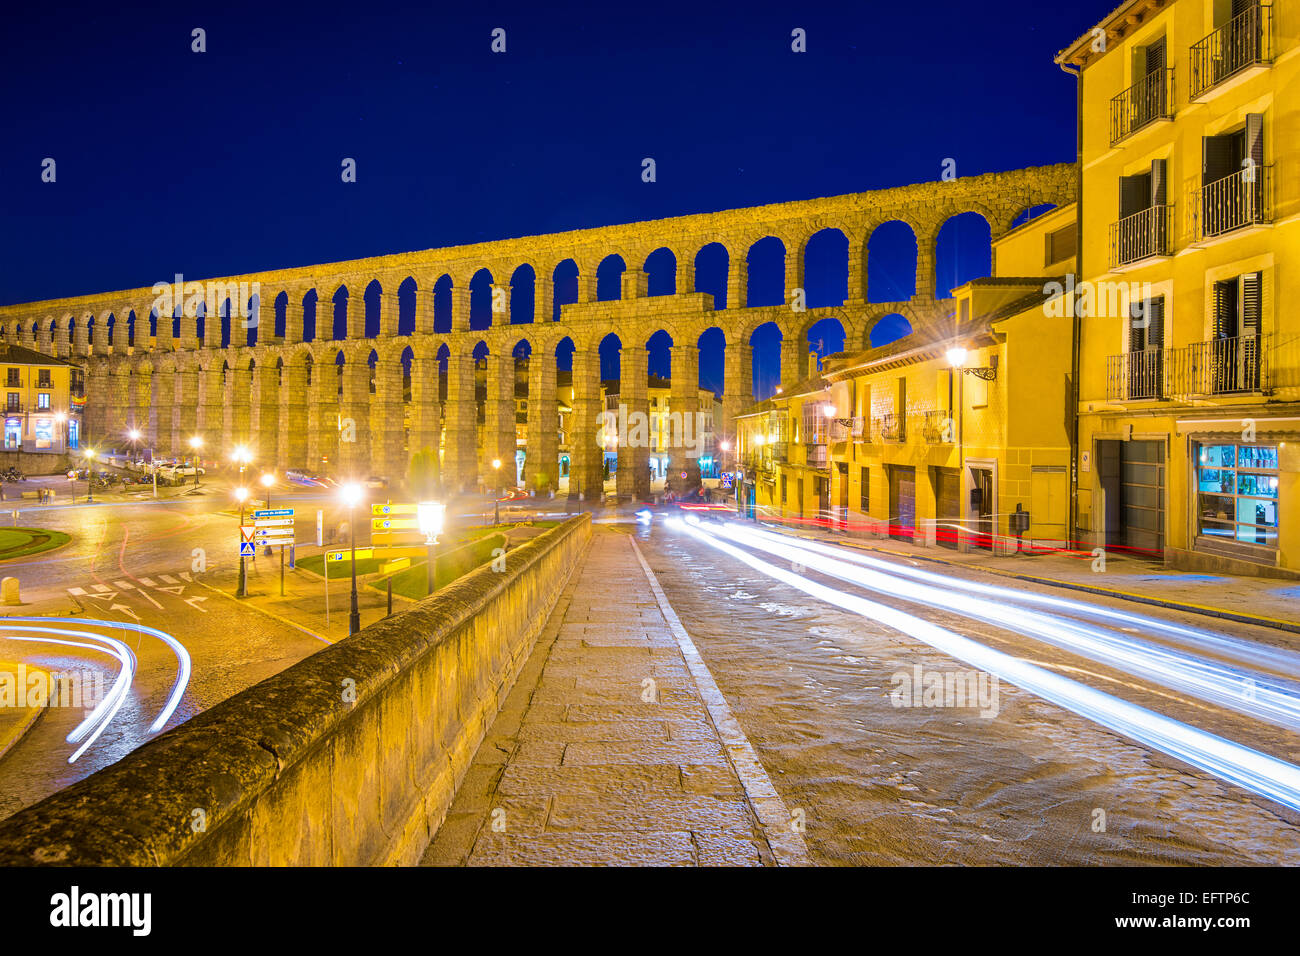 Segovia, Spain old town view at the ancient Roman aqueduct. Stock Photo